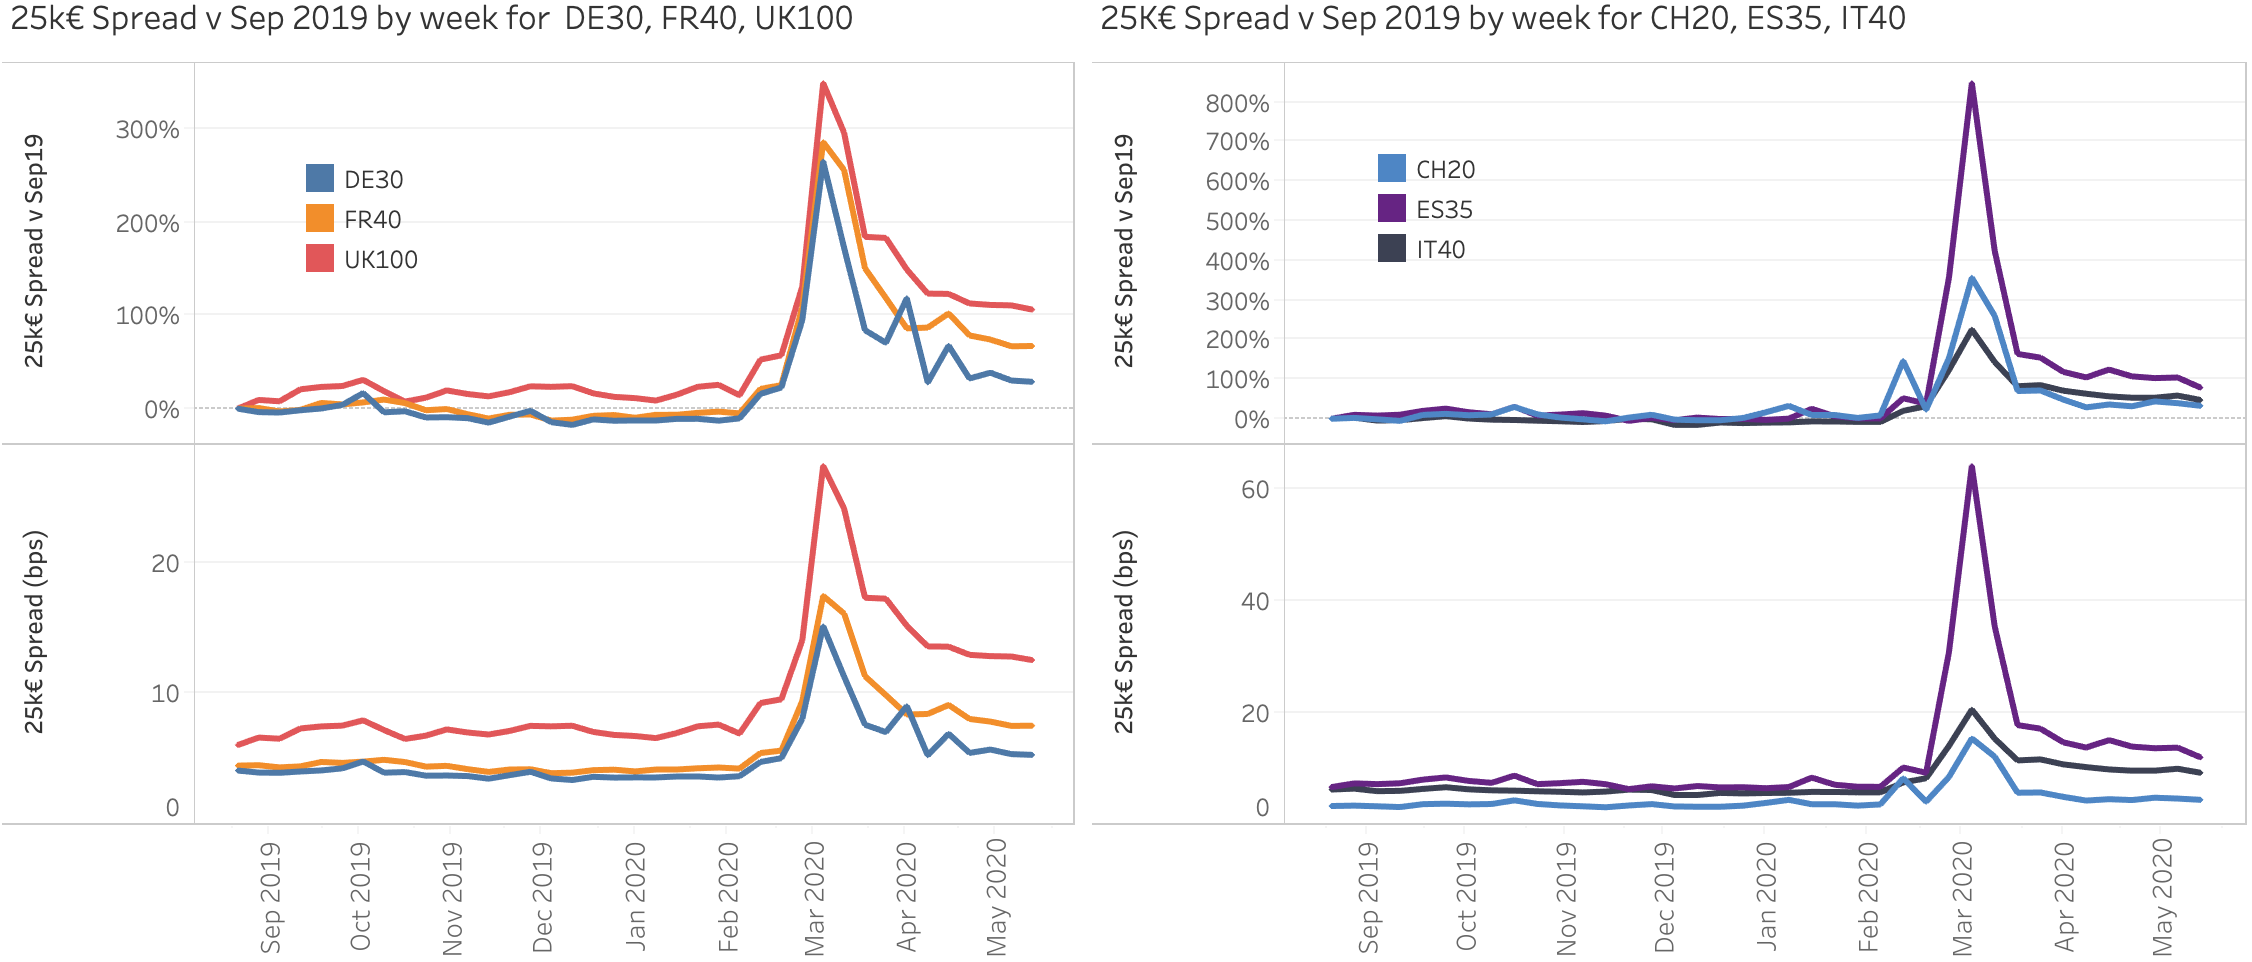 Equity Spreads from 2019 to 2020 during Covid